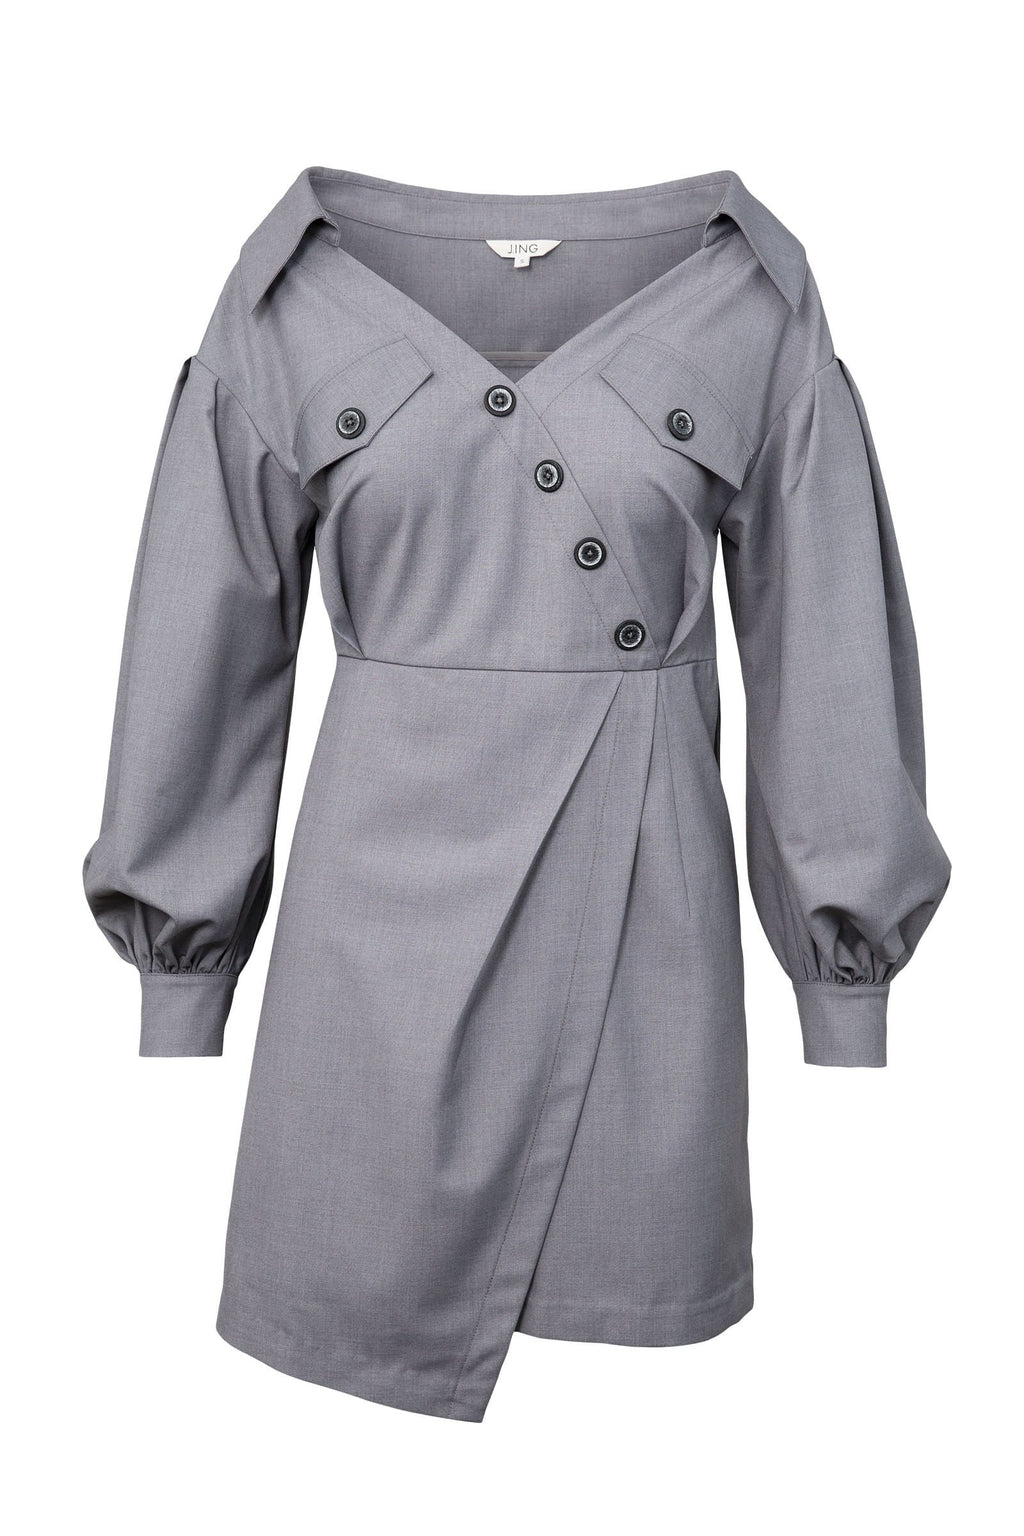 Snapt Grey Asymmetrical Dress